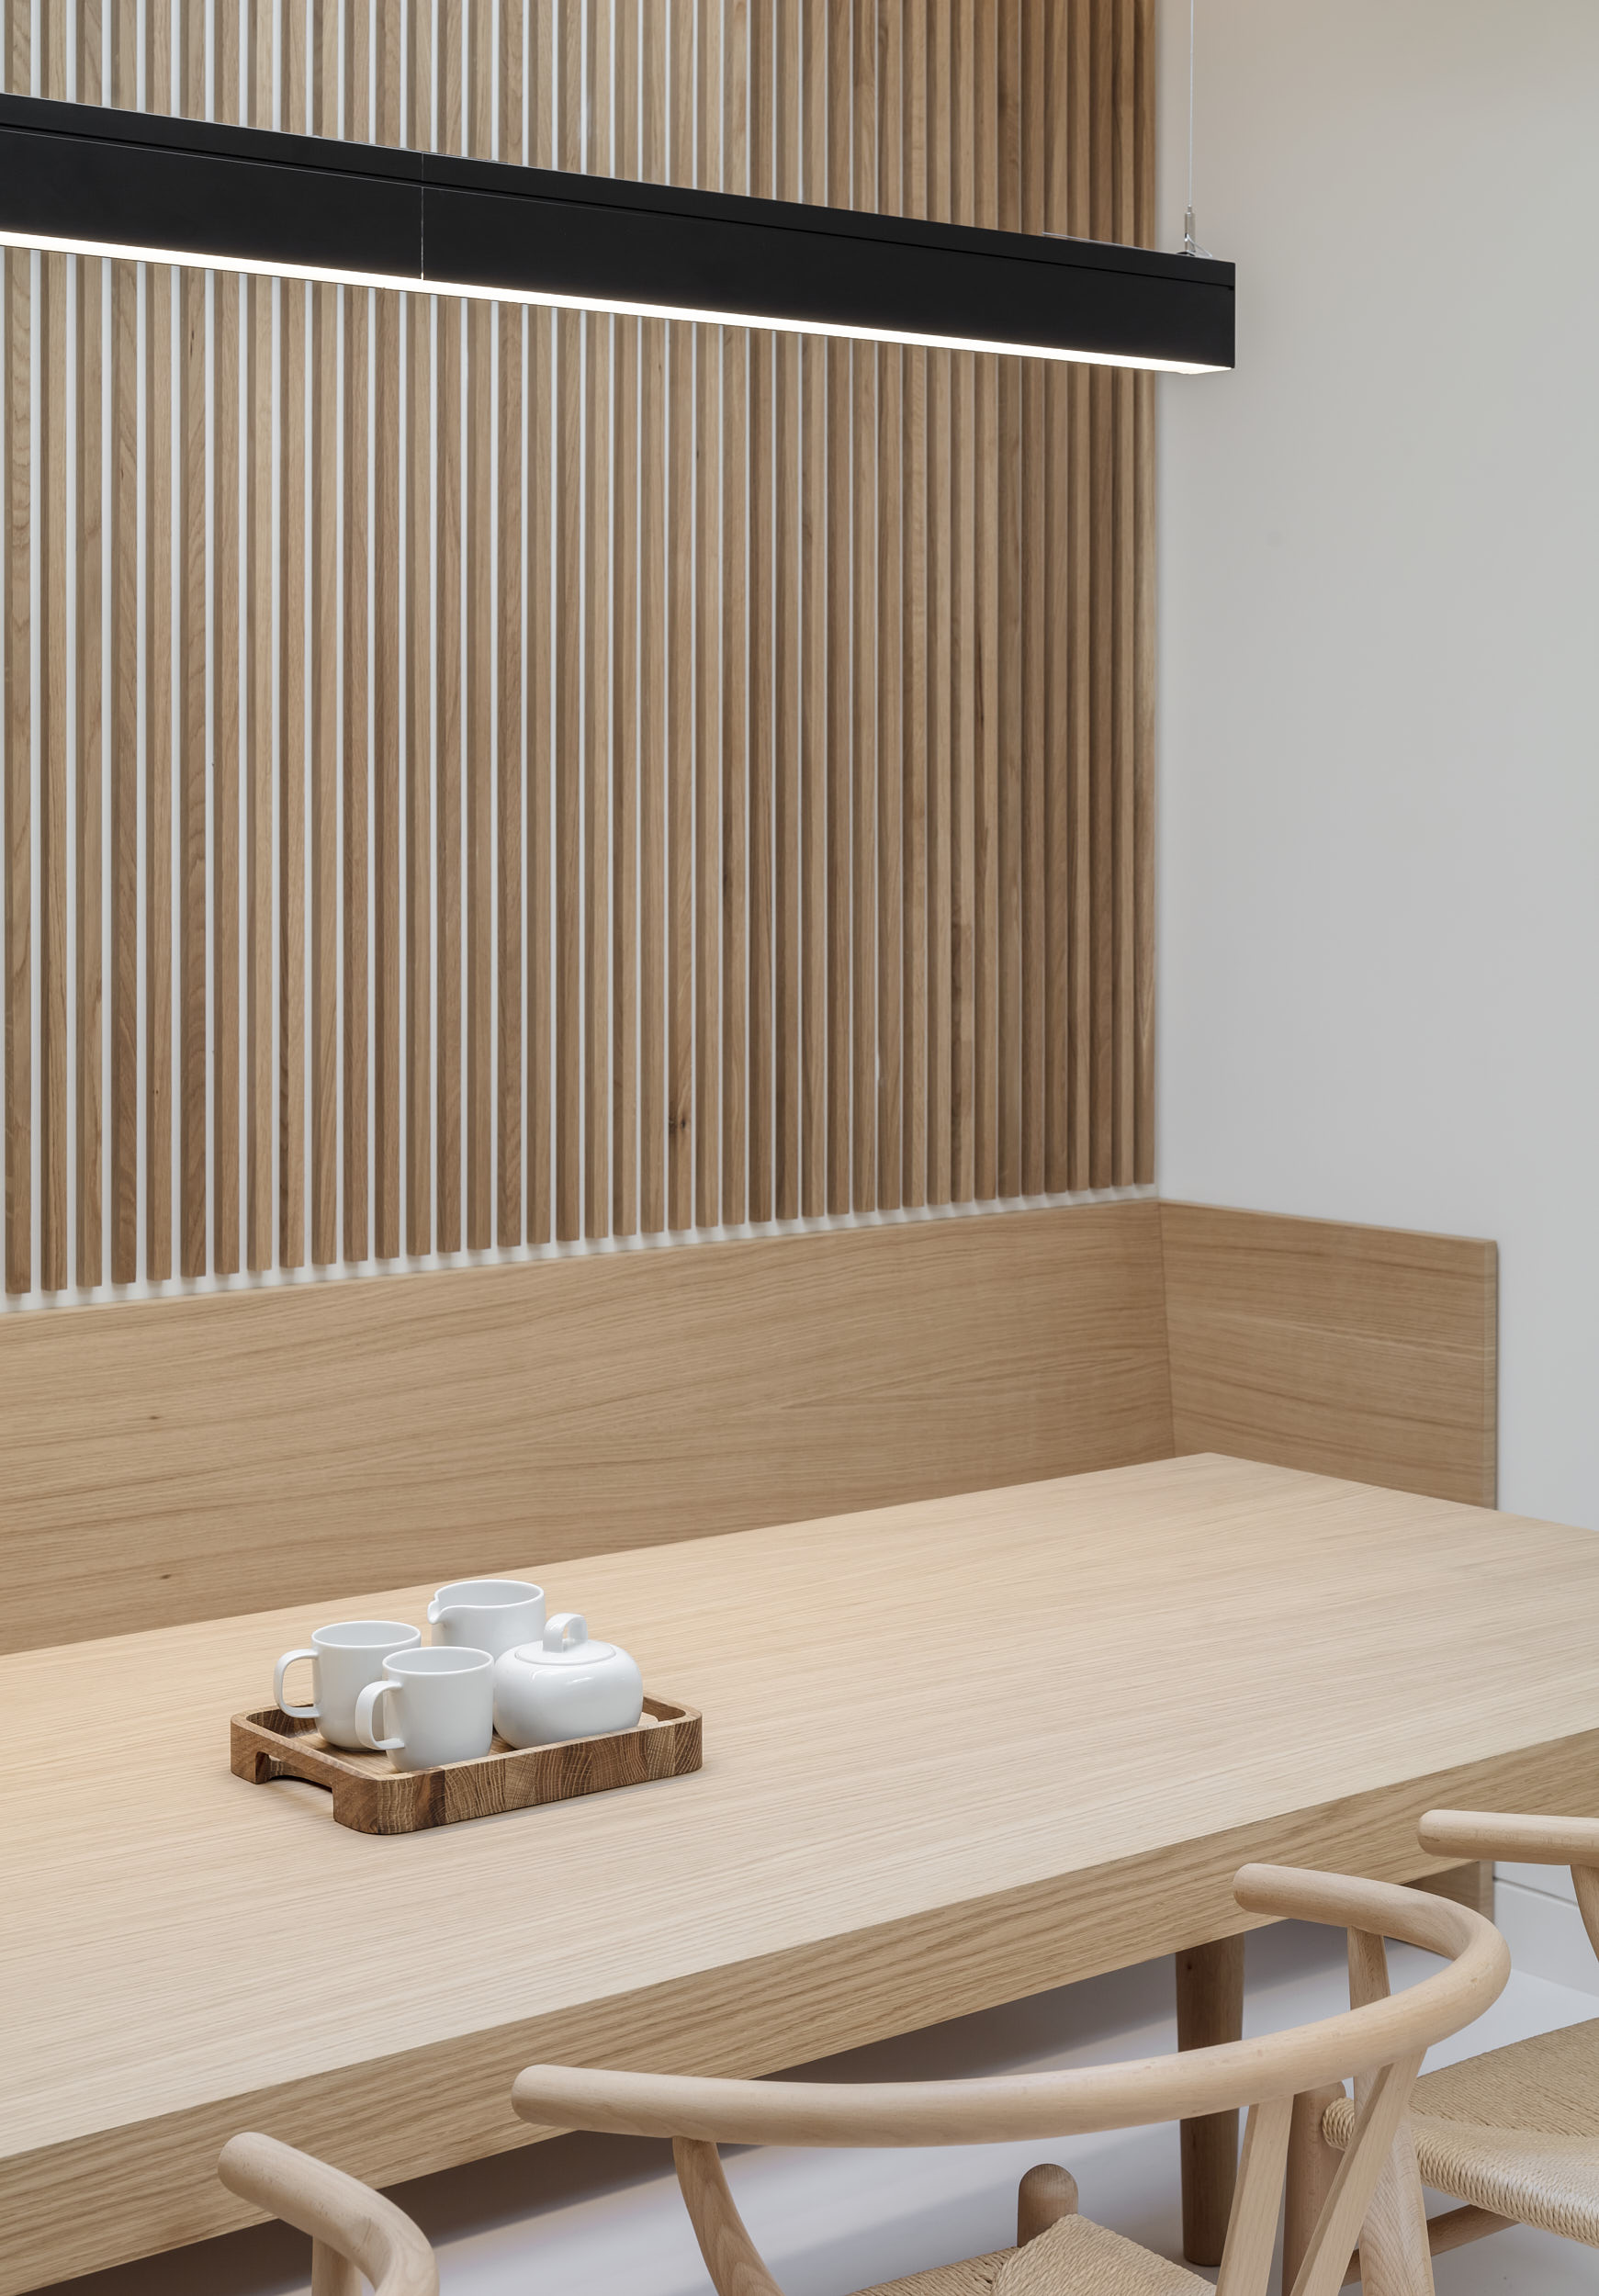 Minimalist dining and meeting space featuring bespoke furniture and timber cladding.